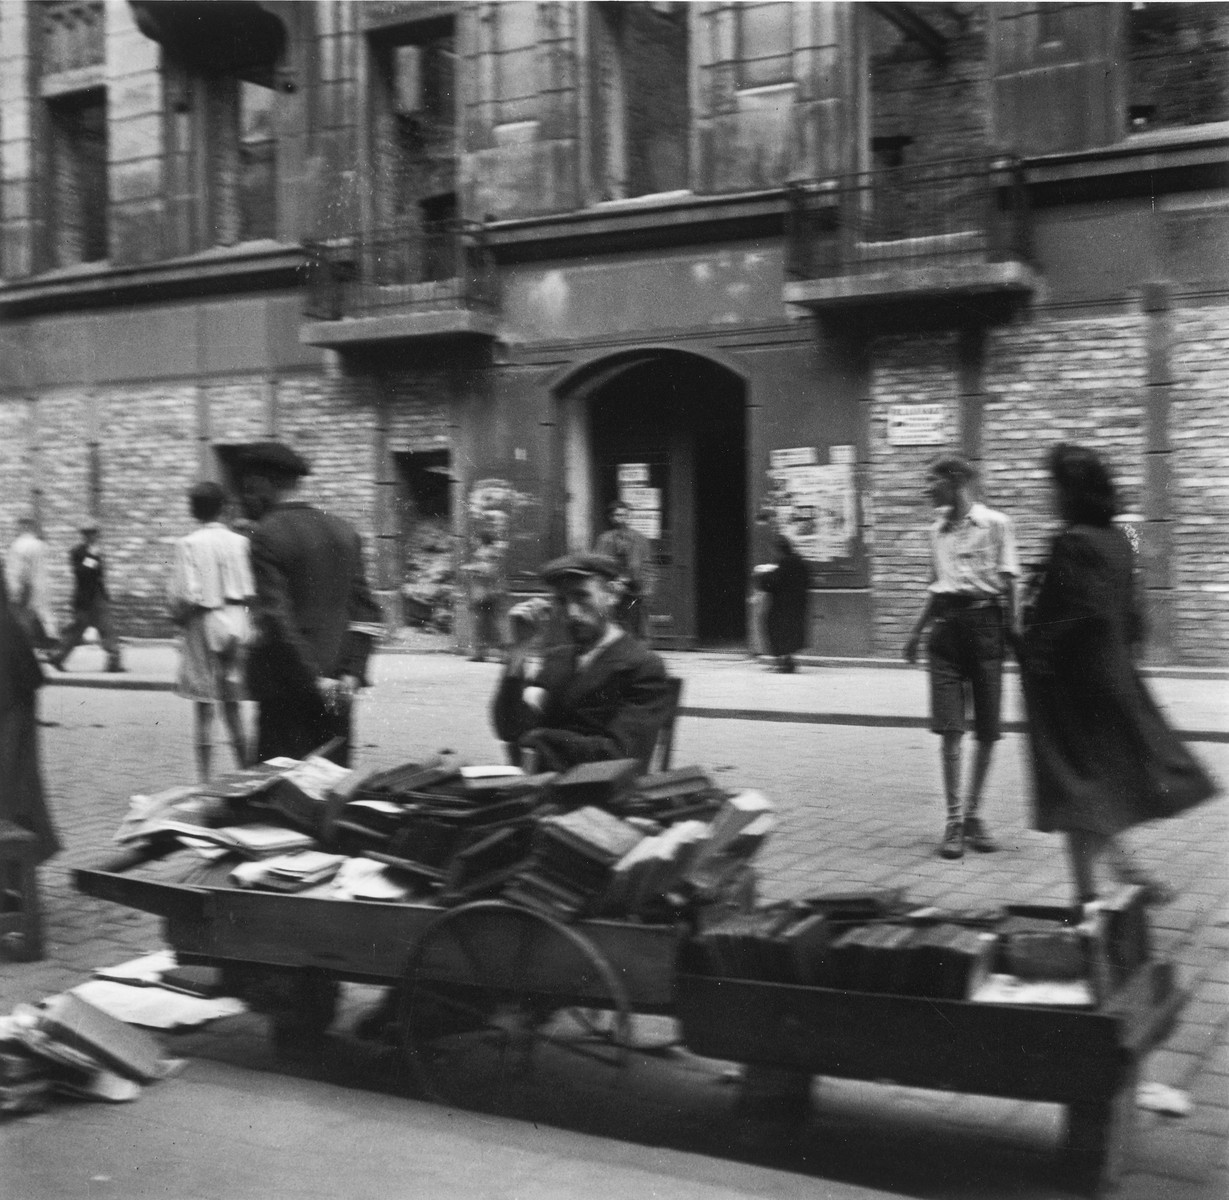 """A vendor sells used books on a street in the Warsaw ghetto.  Joest's original caption reads: """"I remember quite clearly that I asked myself how these people could buy books when they had nothing to eat.  I don't recall the location of this picture.  There were many such book carts."""""""